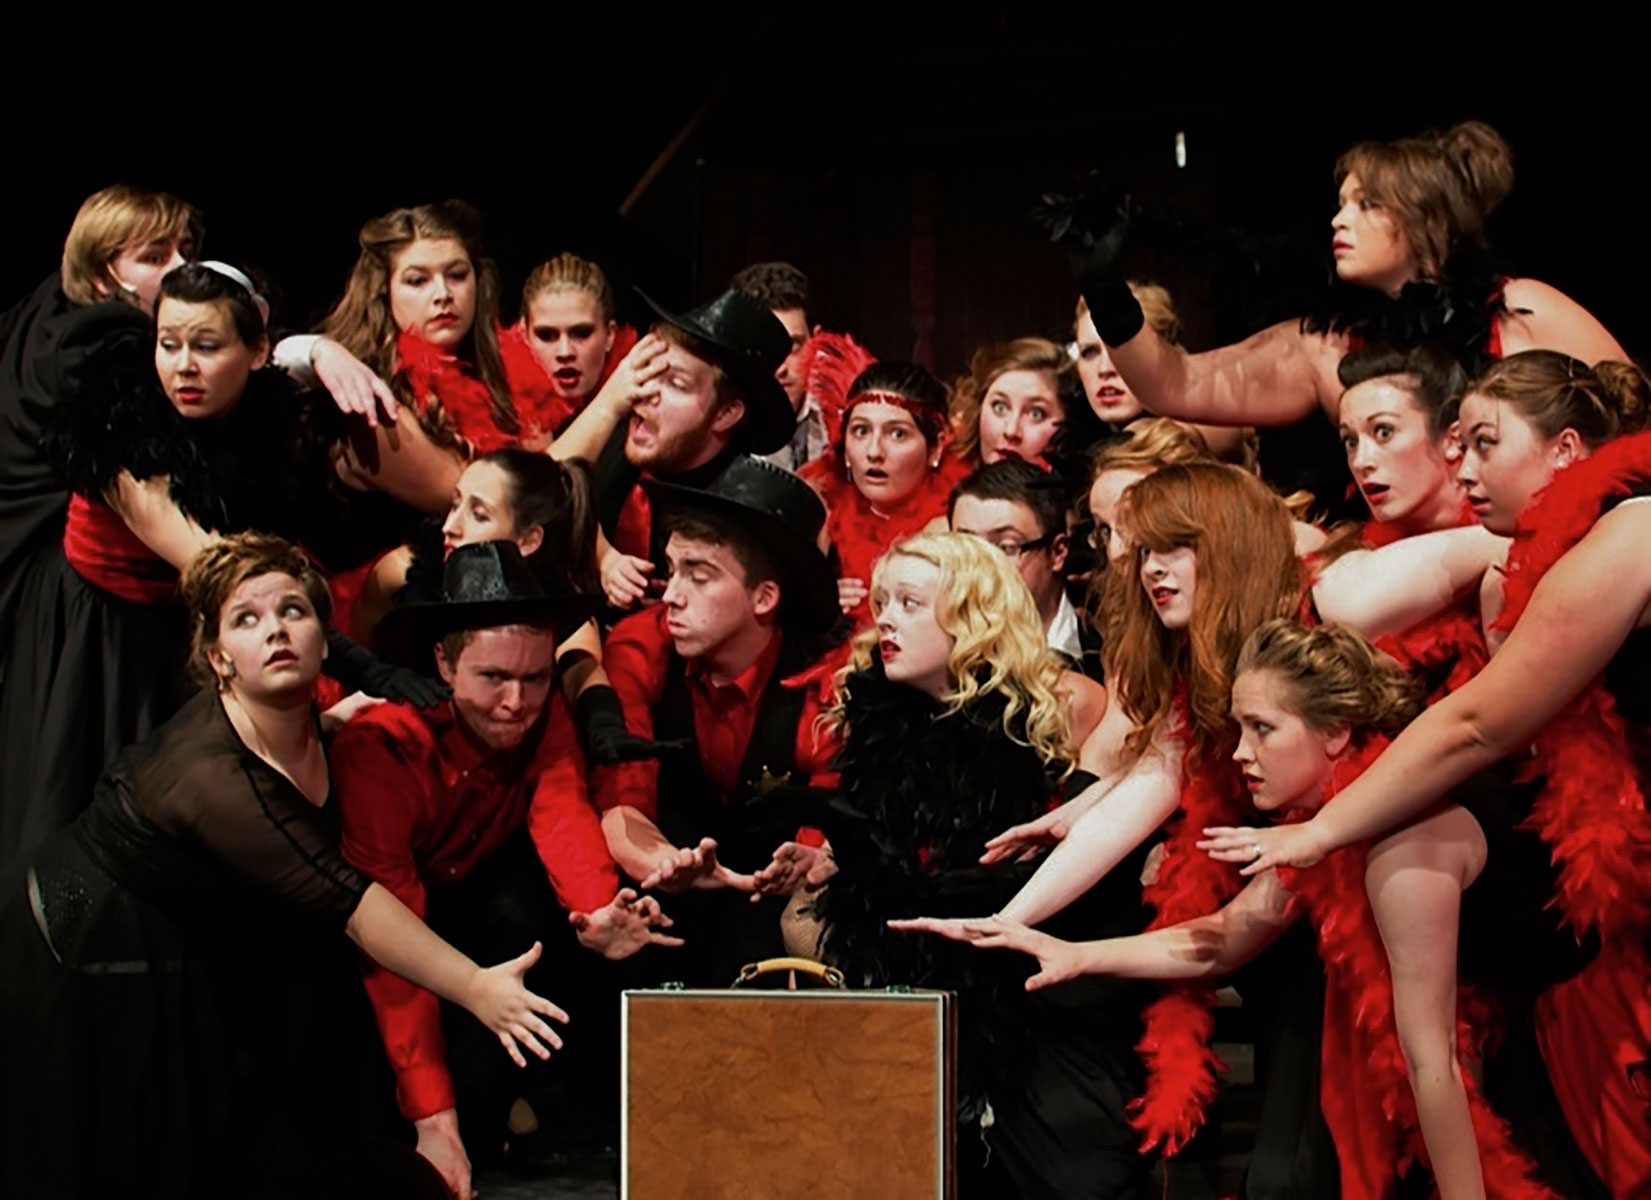 State Drama Theater, Tula: history, repertoire, composition of the troupe 38